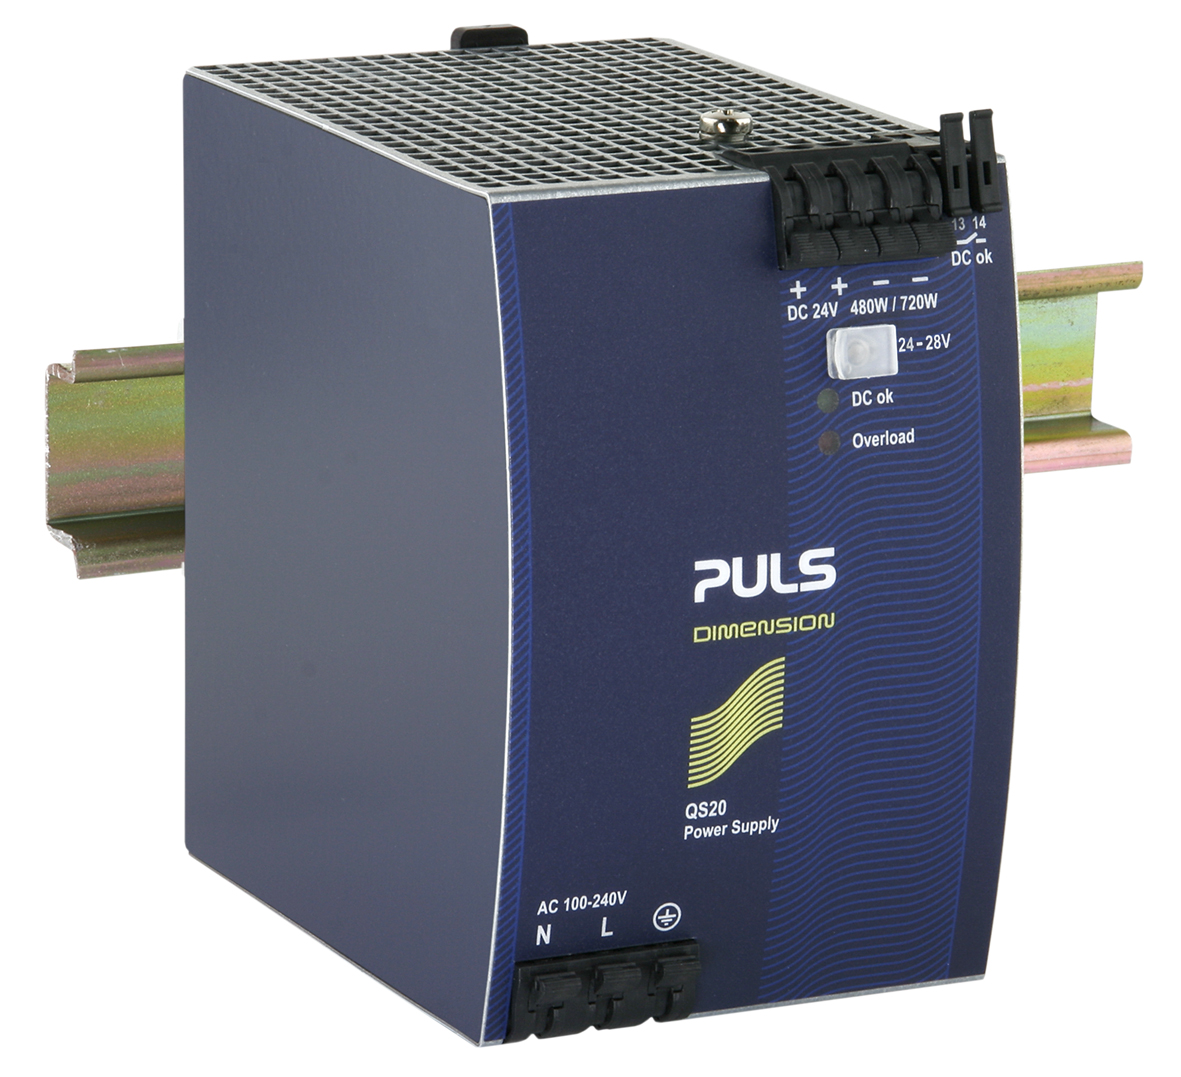 A1 Din Qs20 241 A1 Din Rail Power Supplies For 1 Phase Systems